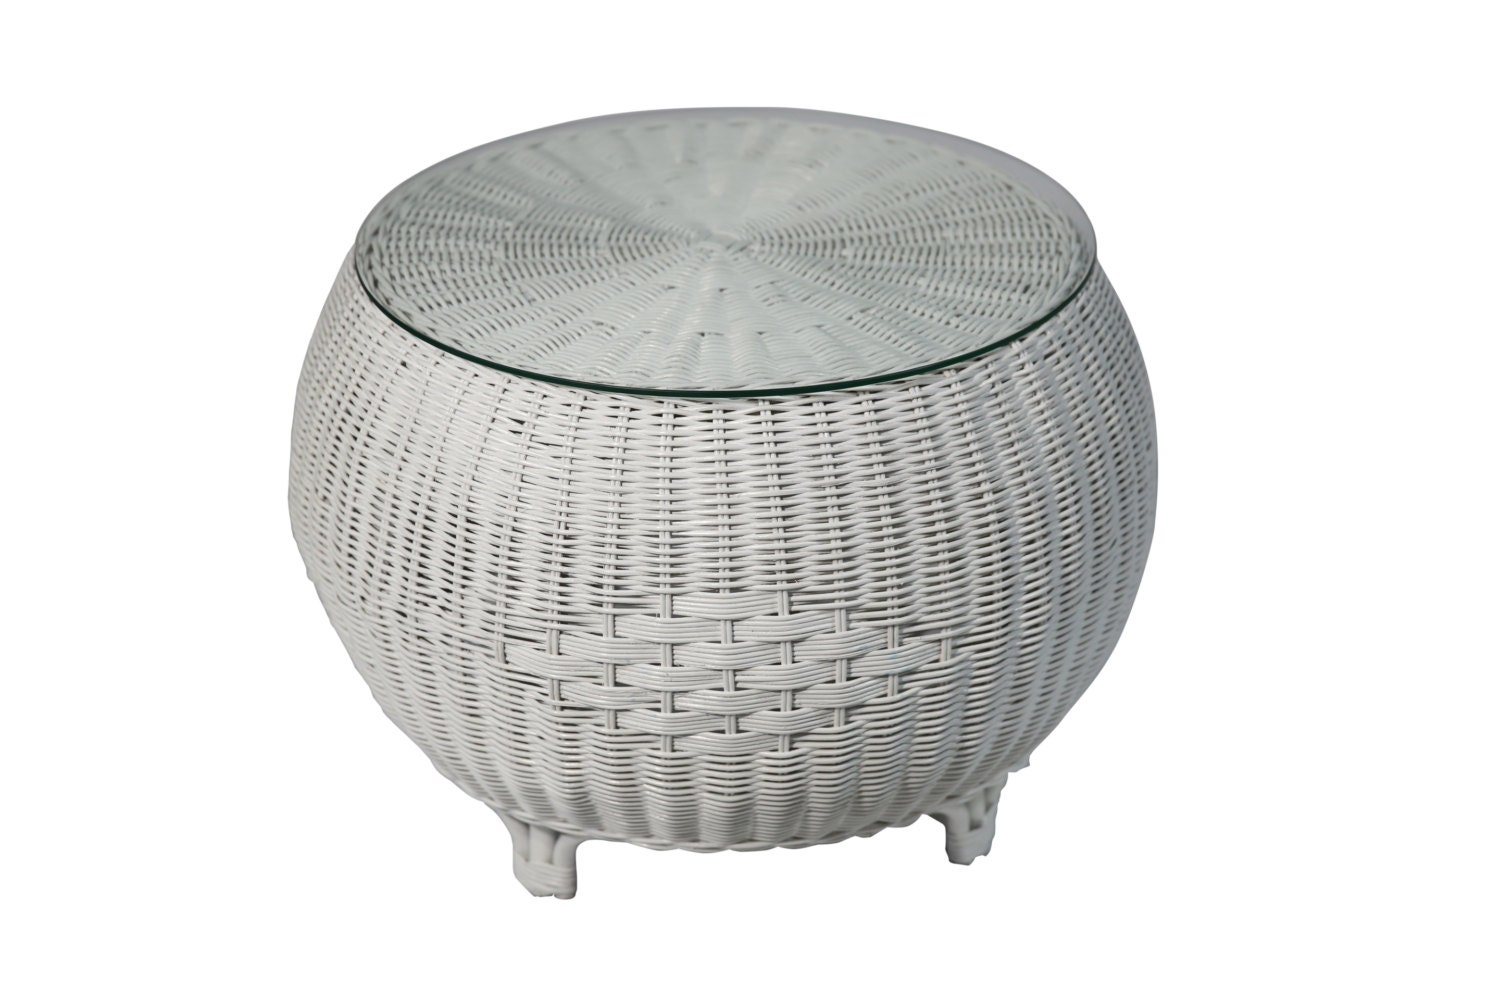 Rattan round coffee table in white Rattan round coffee table